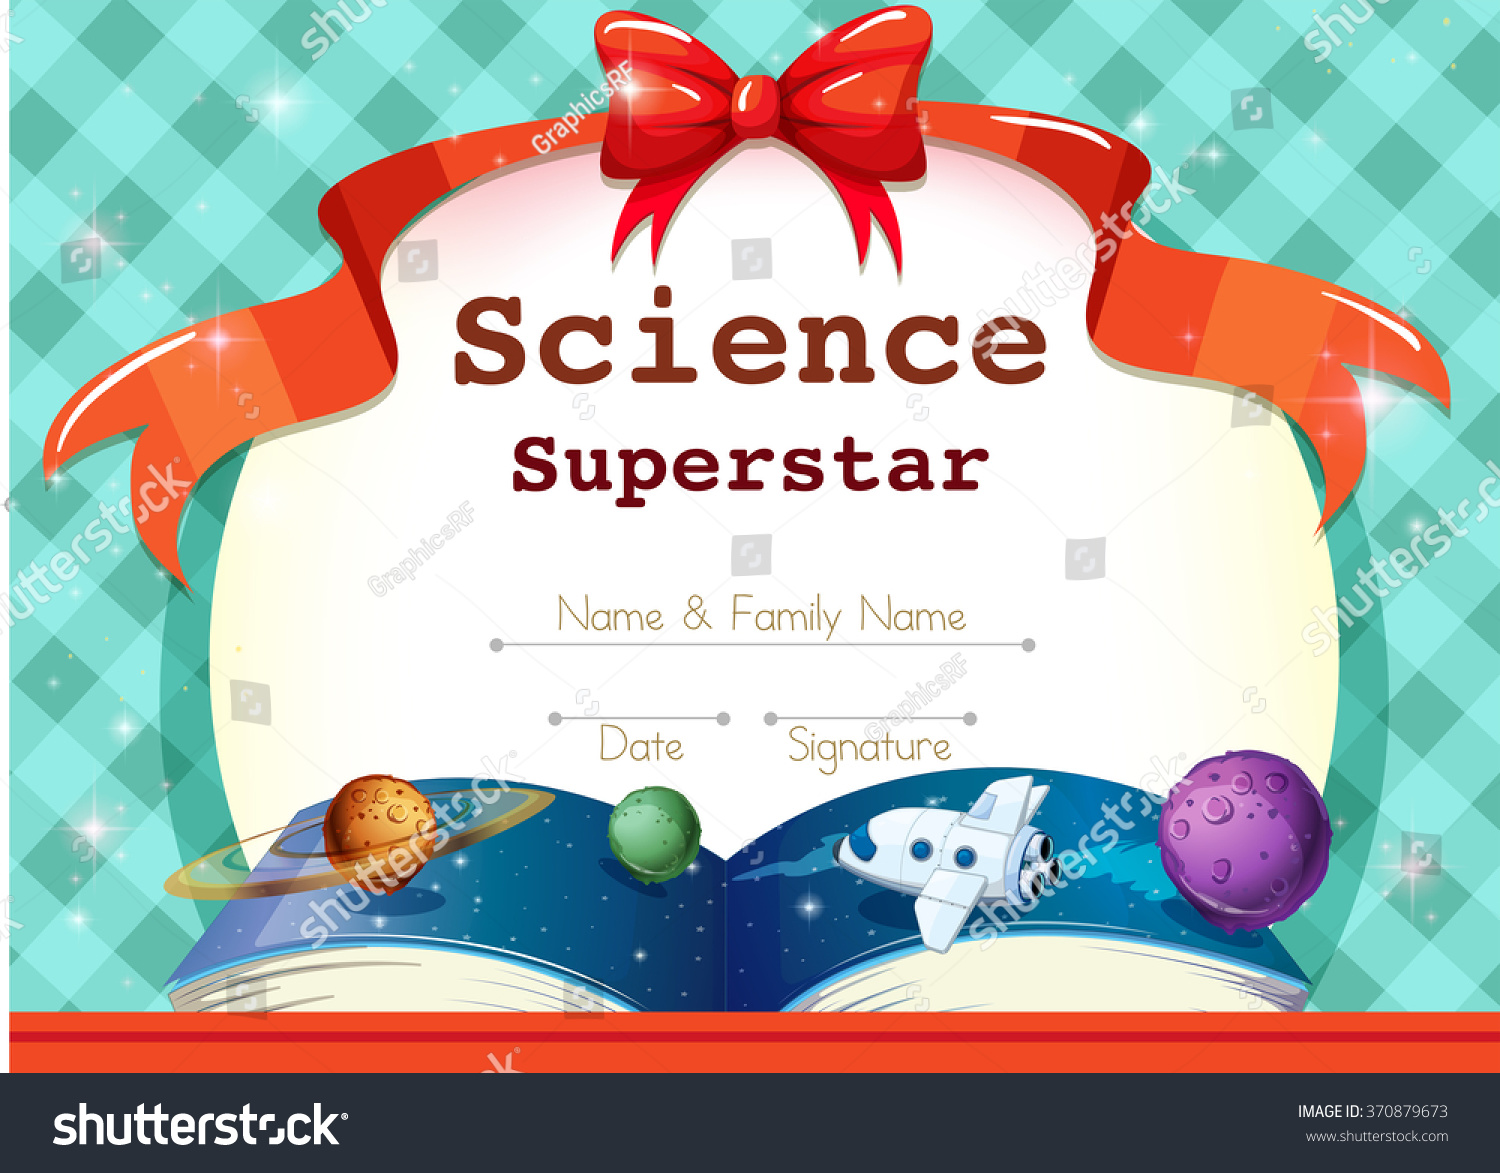 Certificate template science theme illustration stock vector certificate template with science theme illustration yelopaper Images